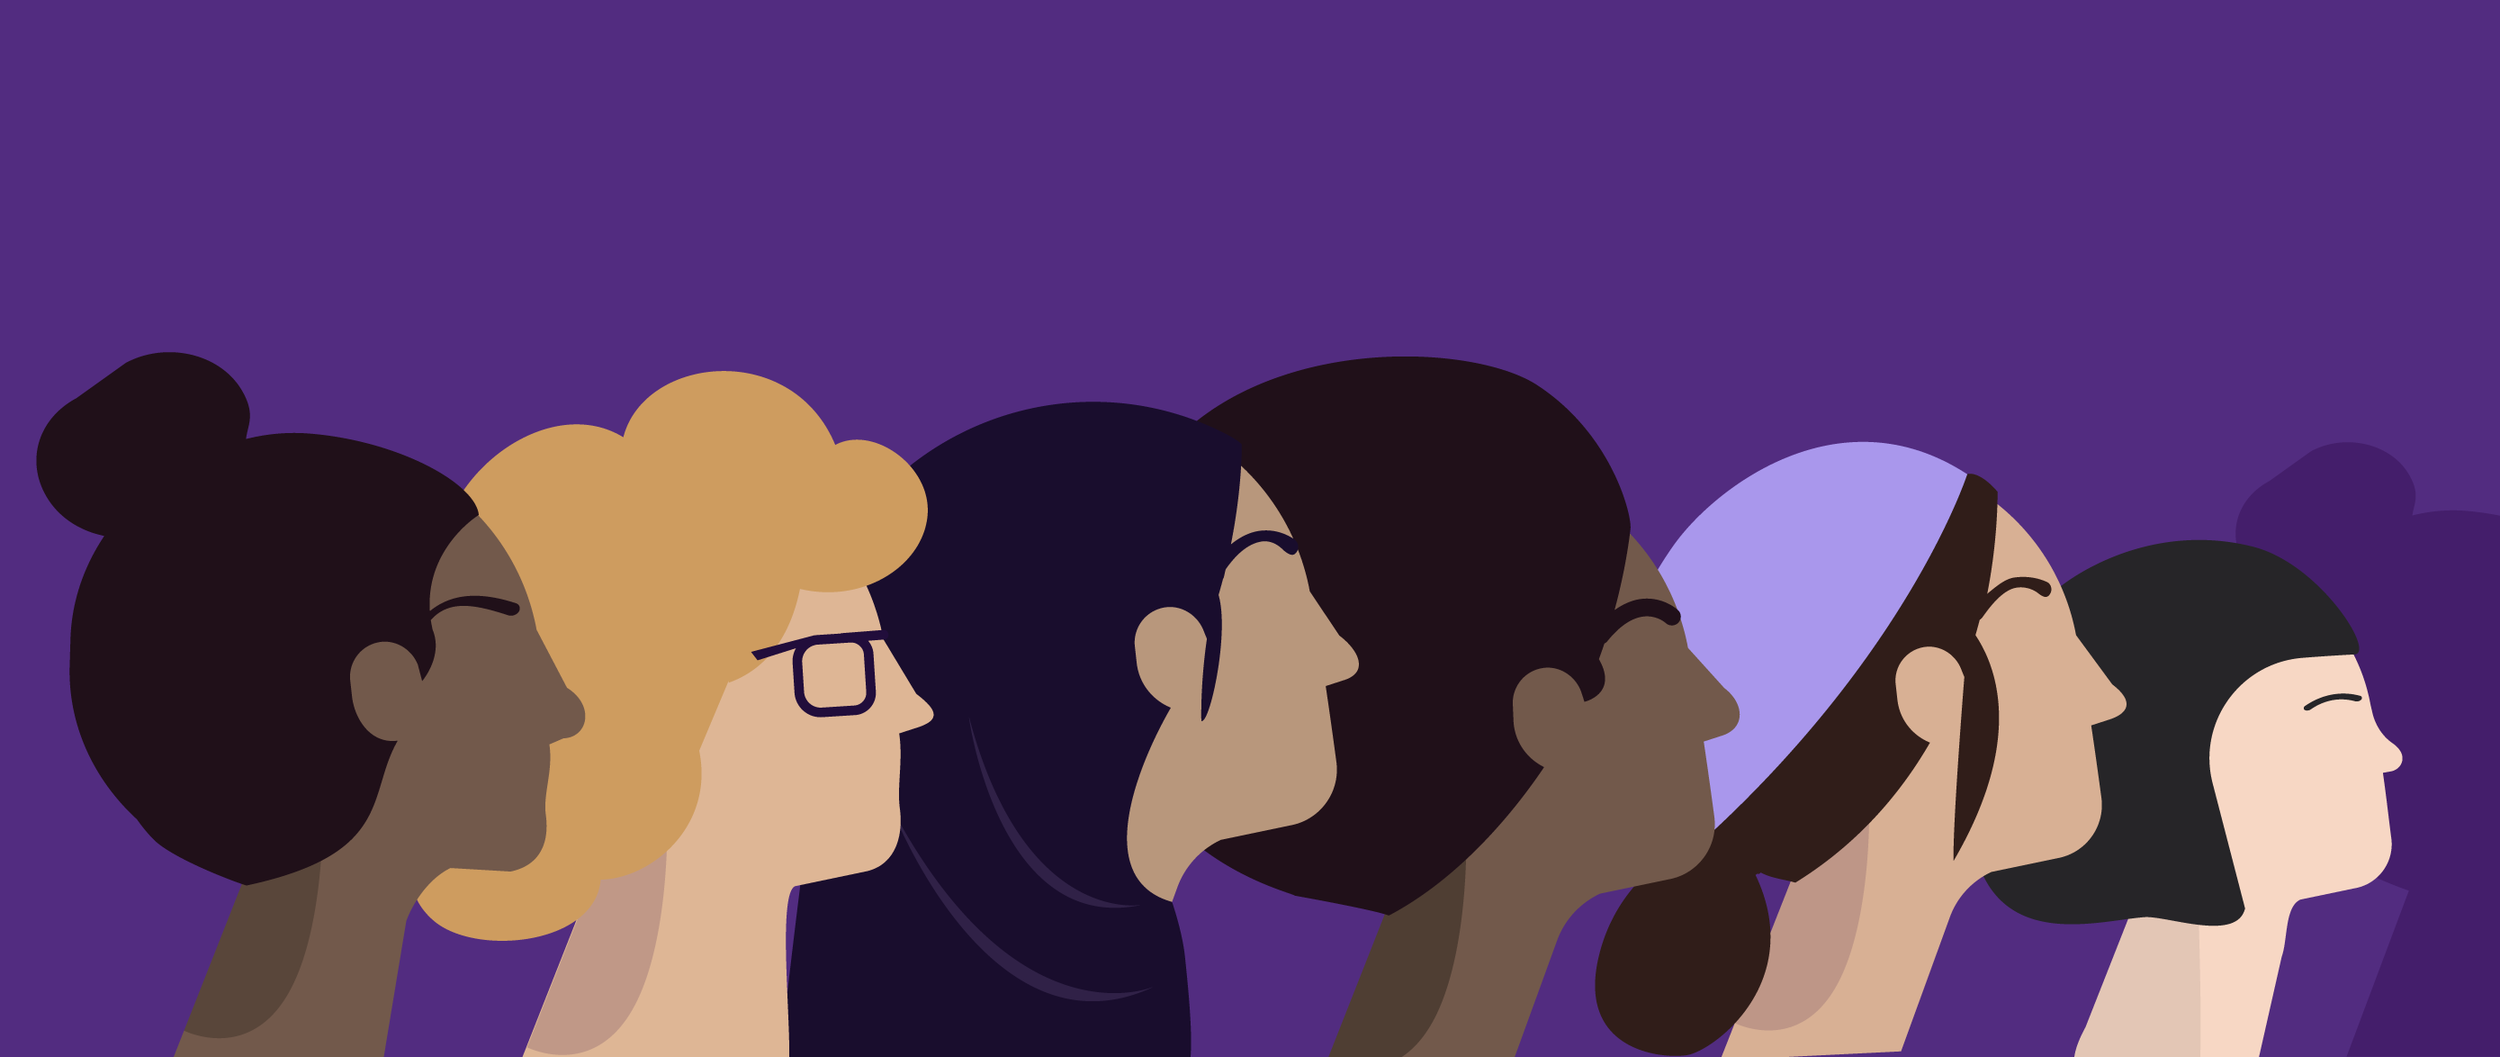 International Women's Day | Microsoft - Art Direction | Illustration